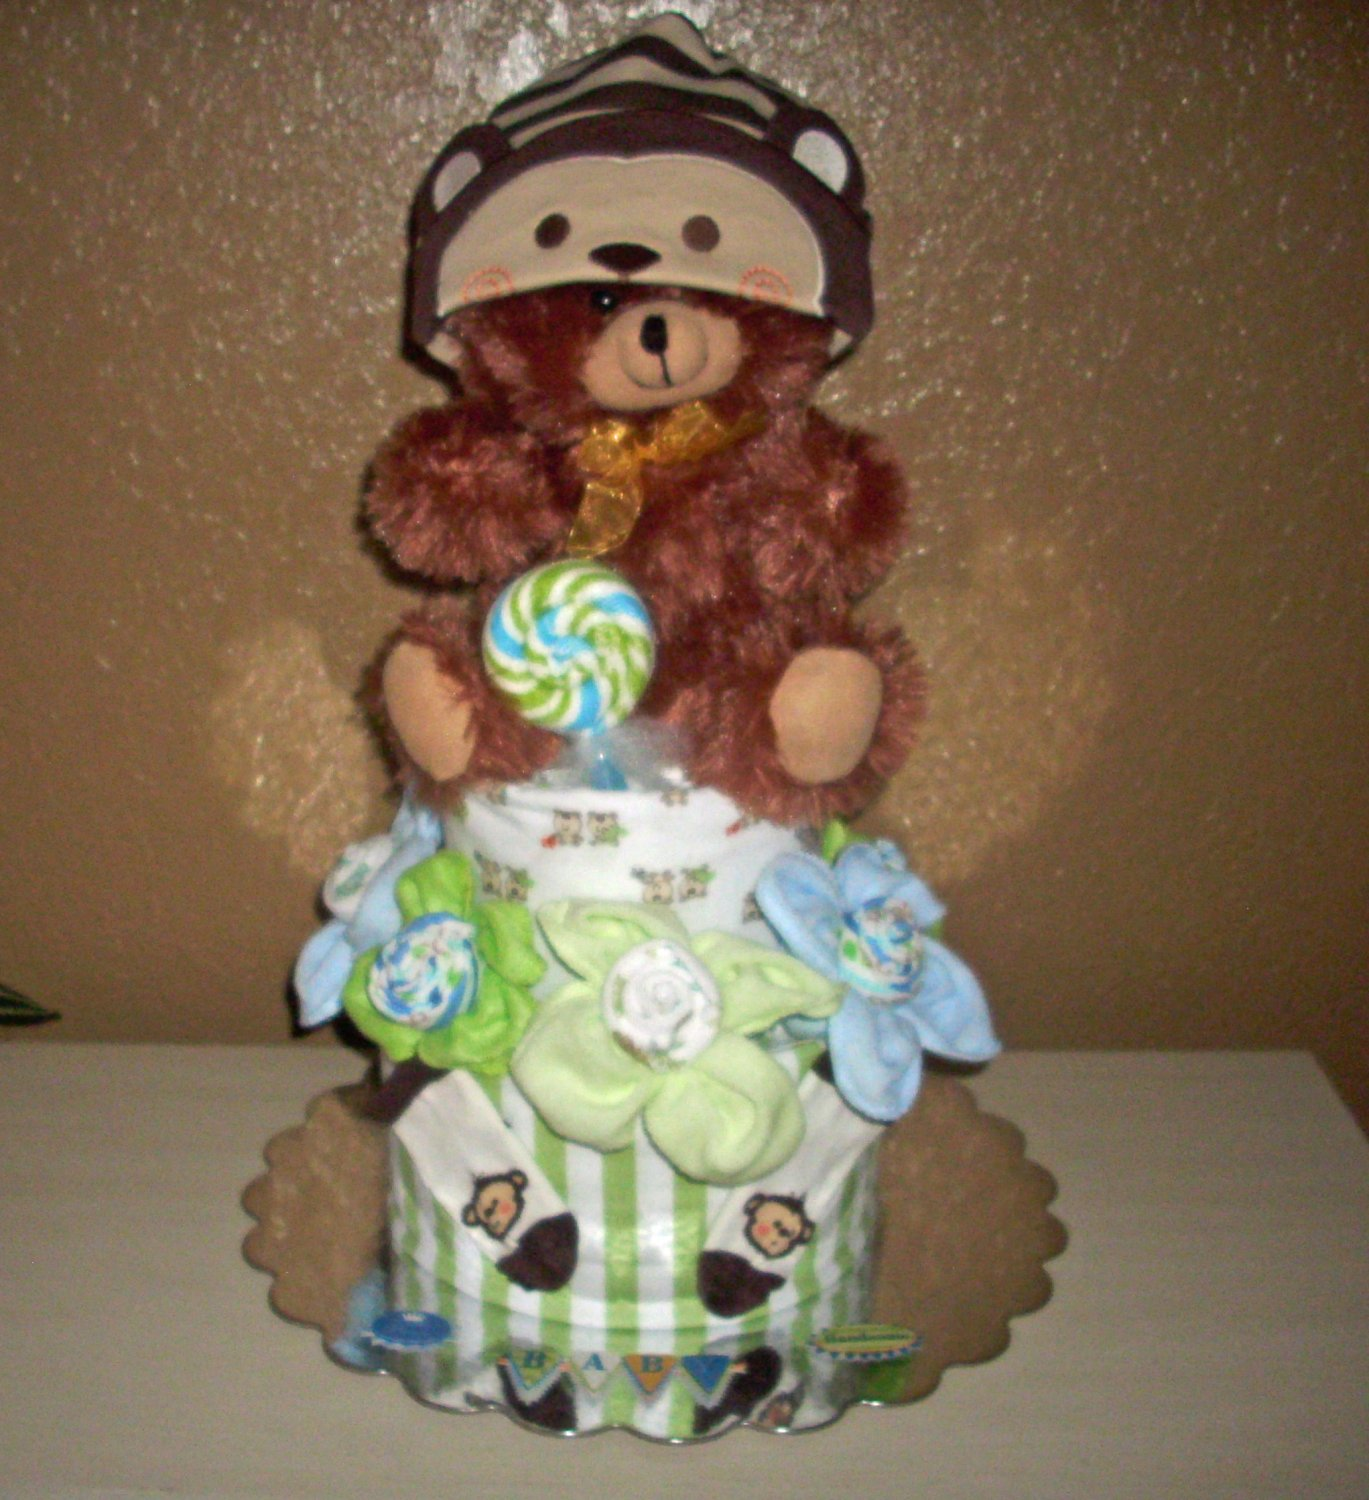 Teddy Bear Diaper Cake for Boy, more than just diapers and ribbon